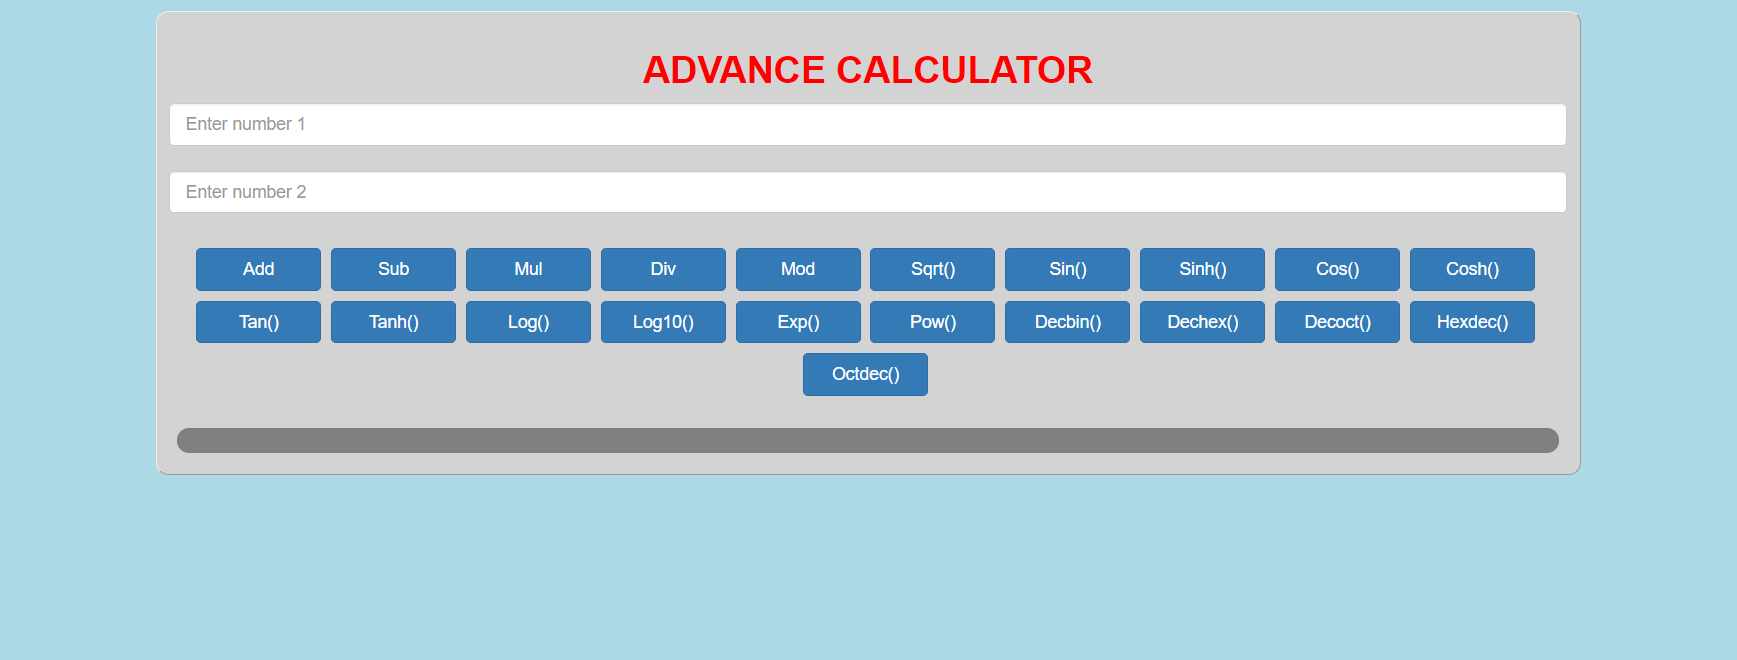 image of advance calculator